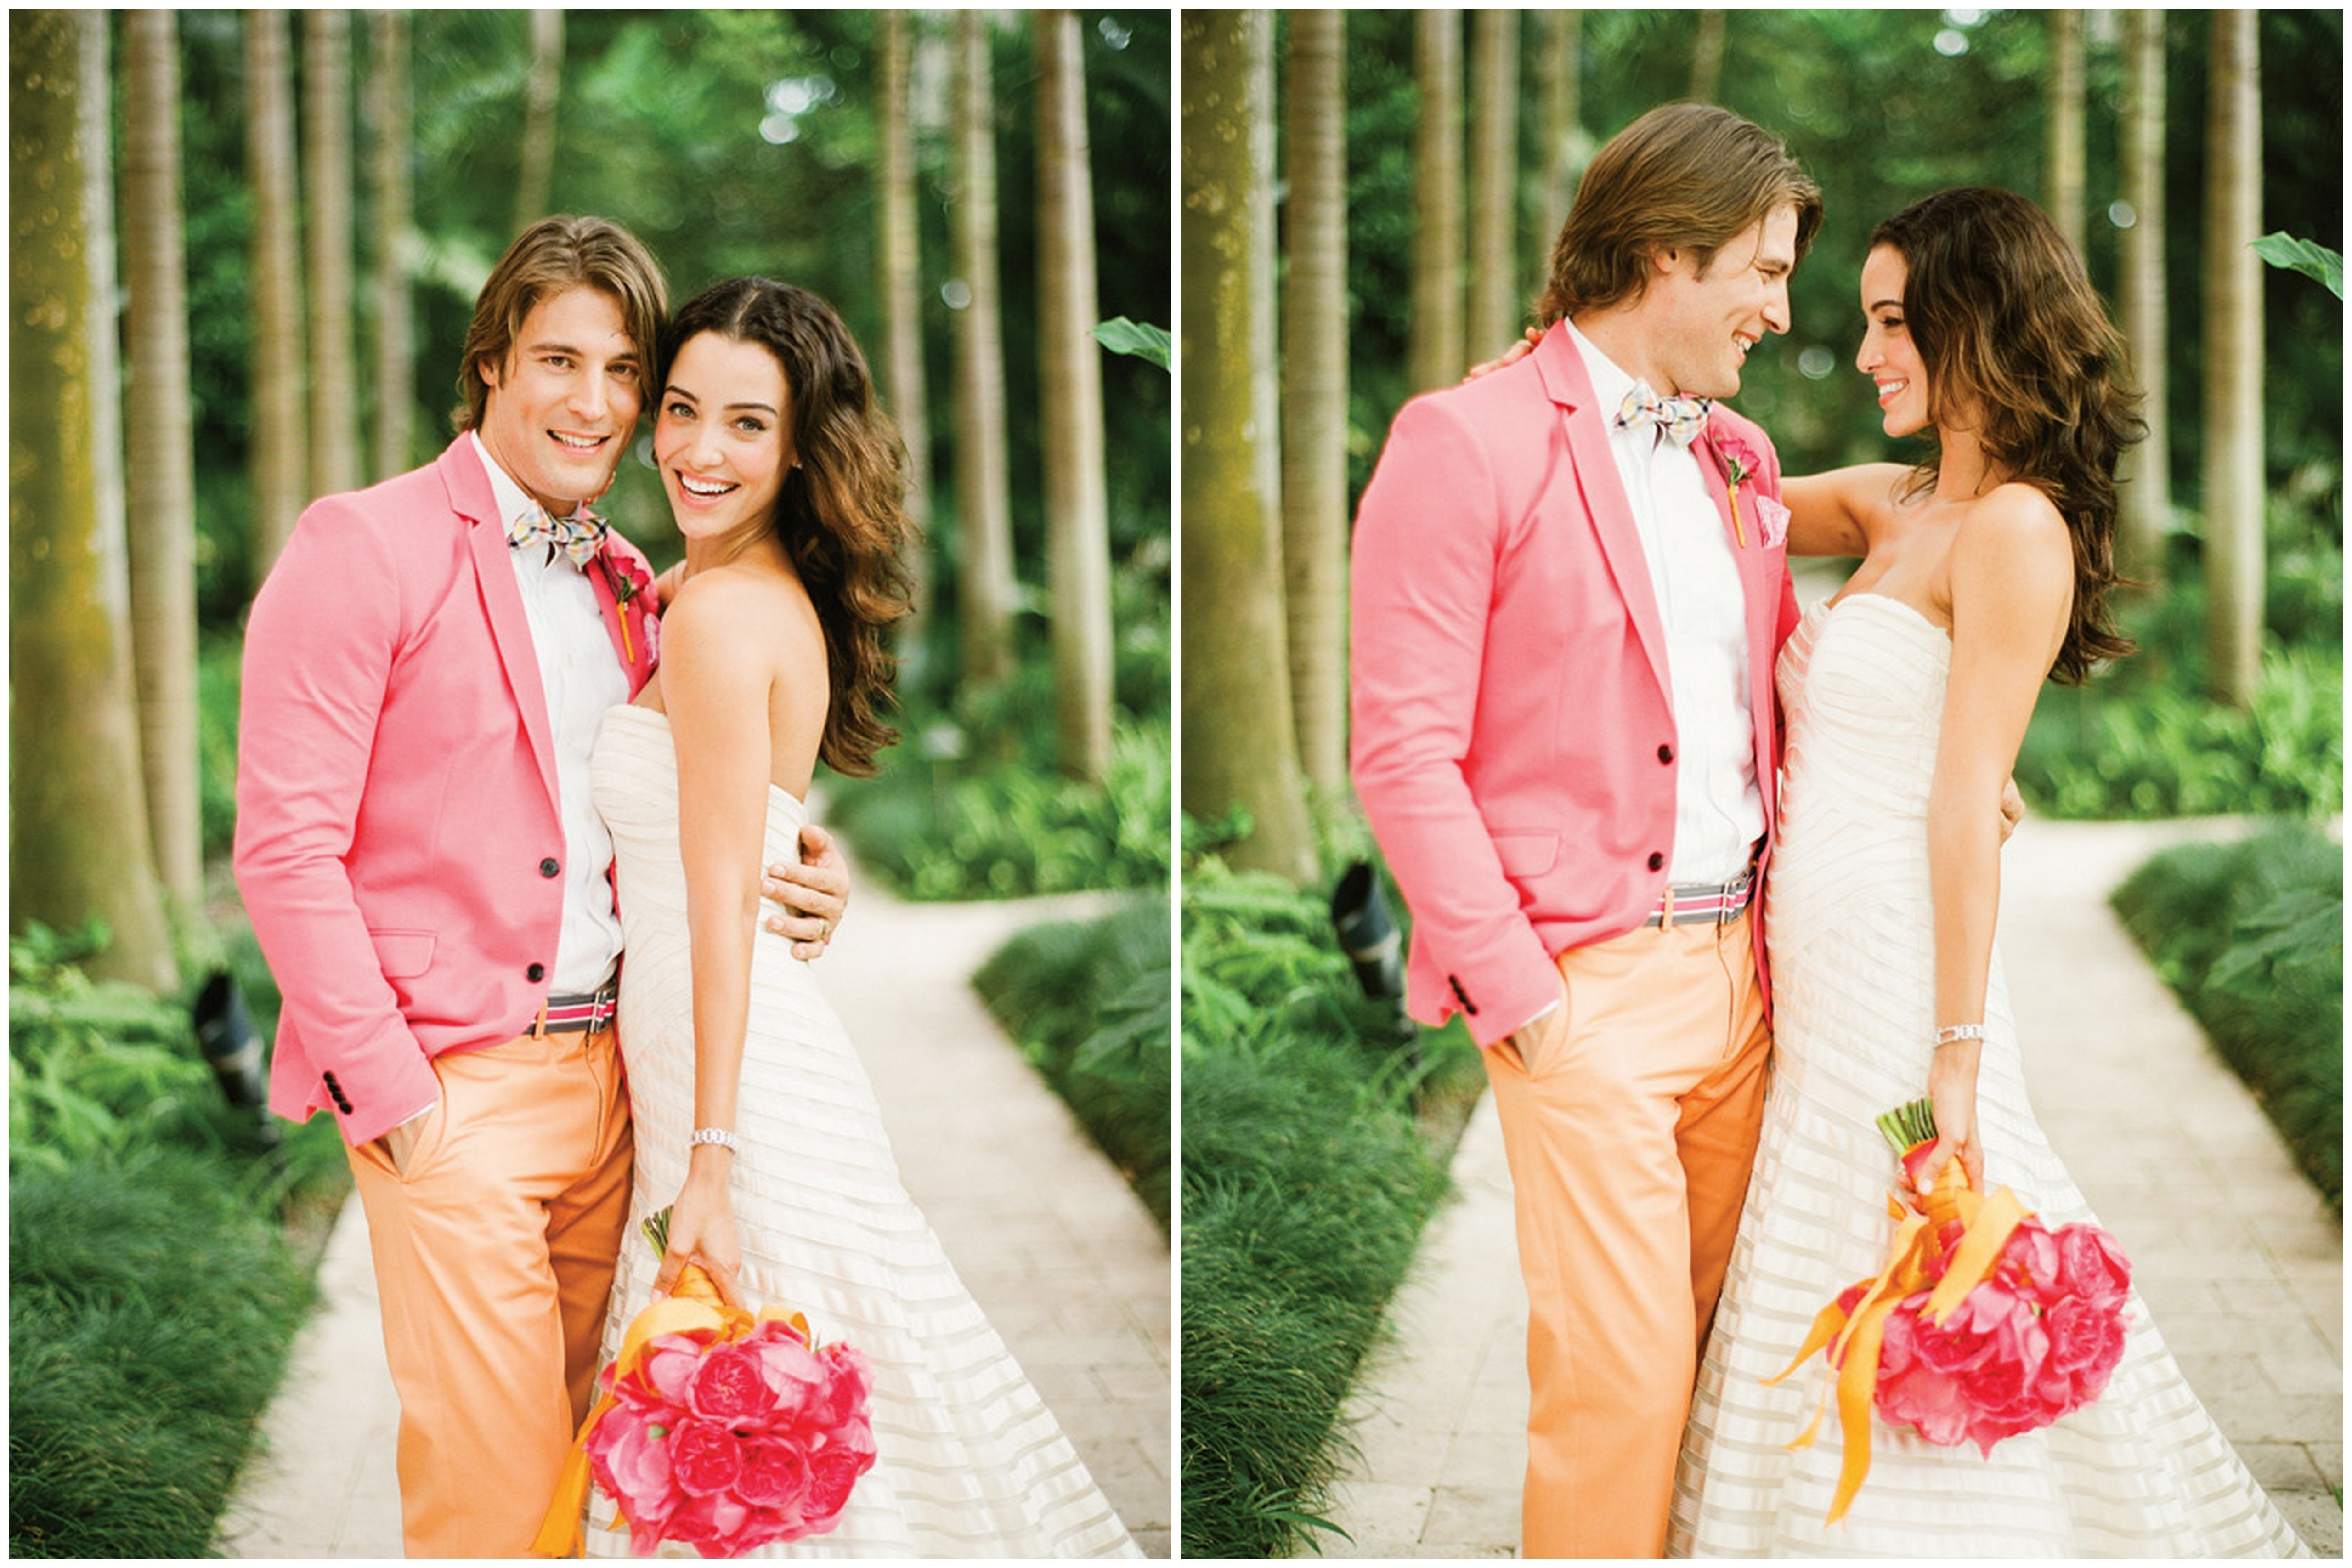 10 Attractive Pink And Orange Wedding Ideas inspiredthese citrus orange and pink wedding ideas inspired